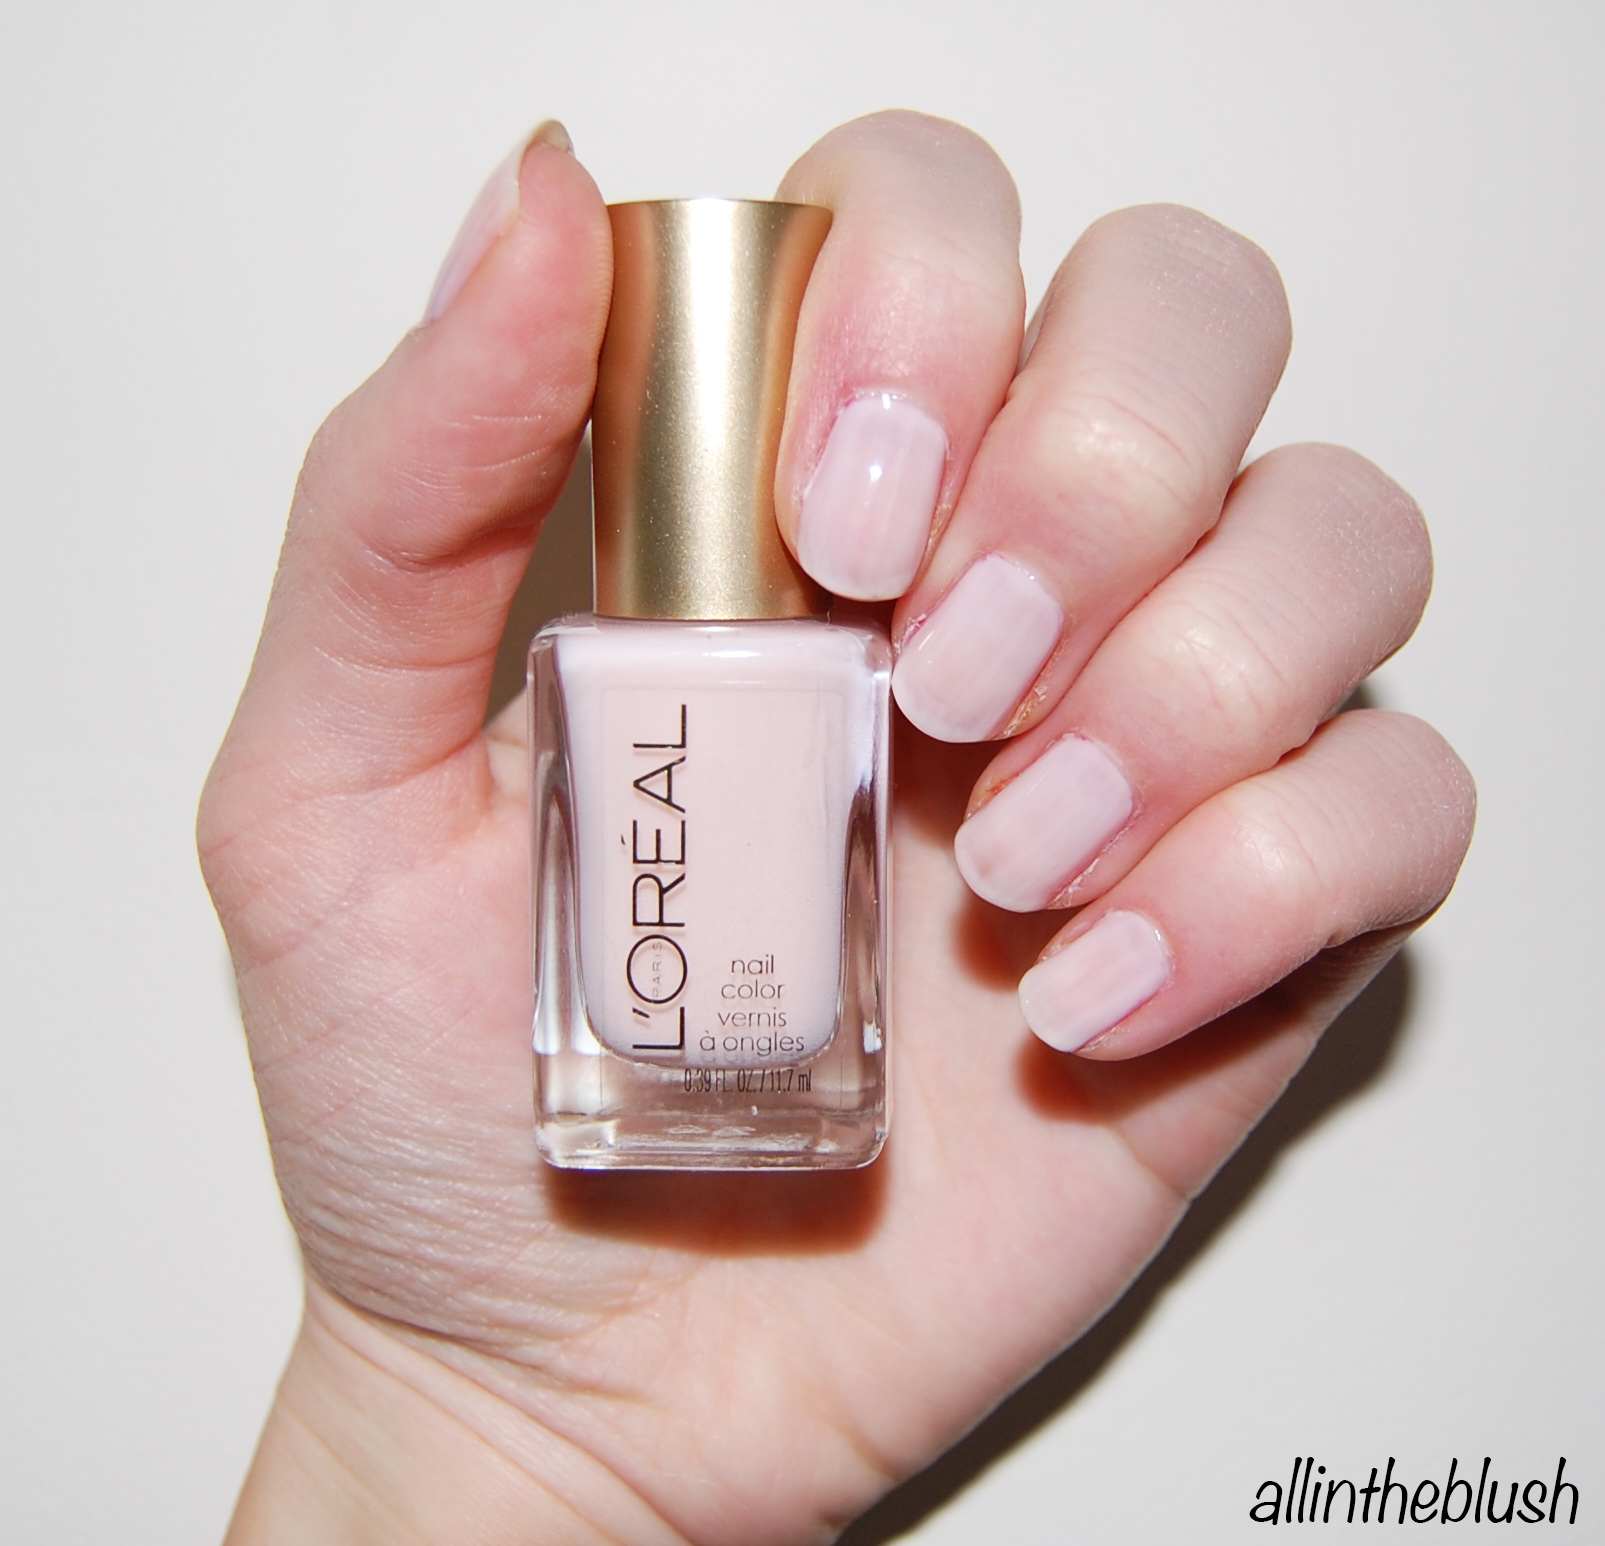 L'Oreal How Romantic Nail Polish